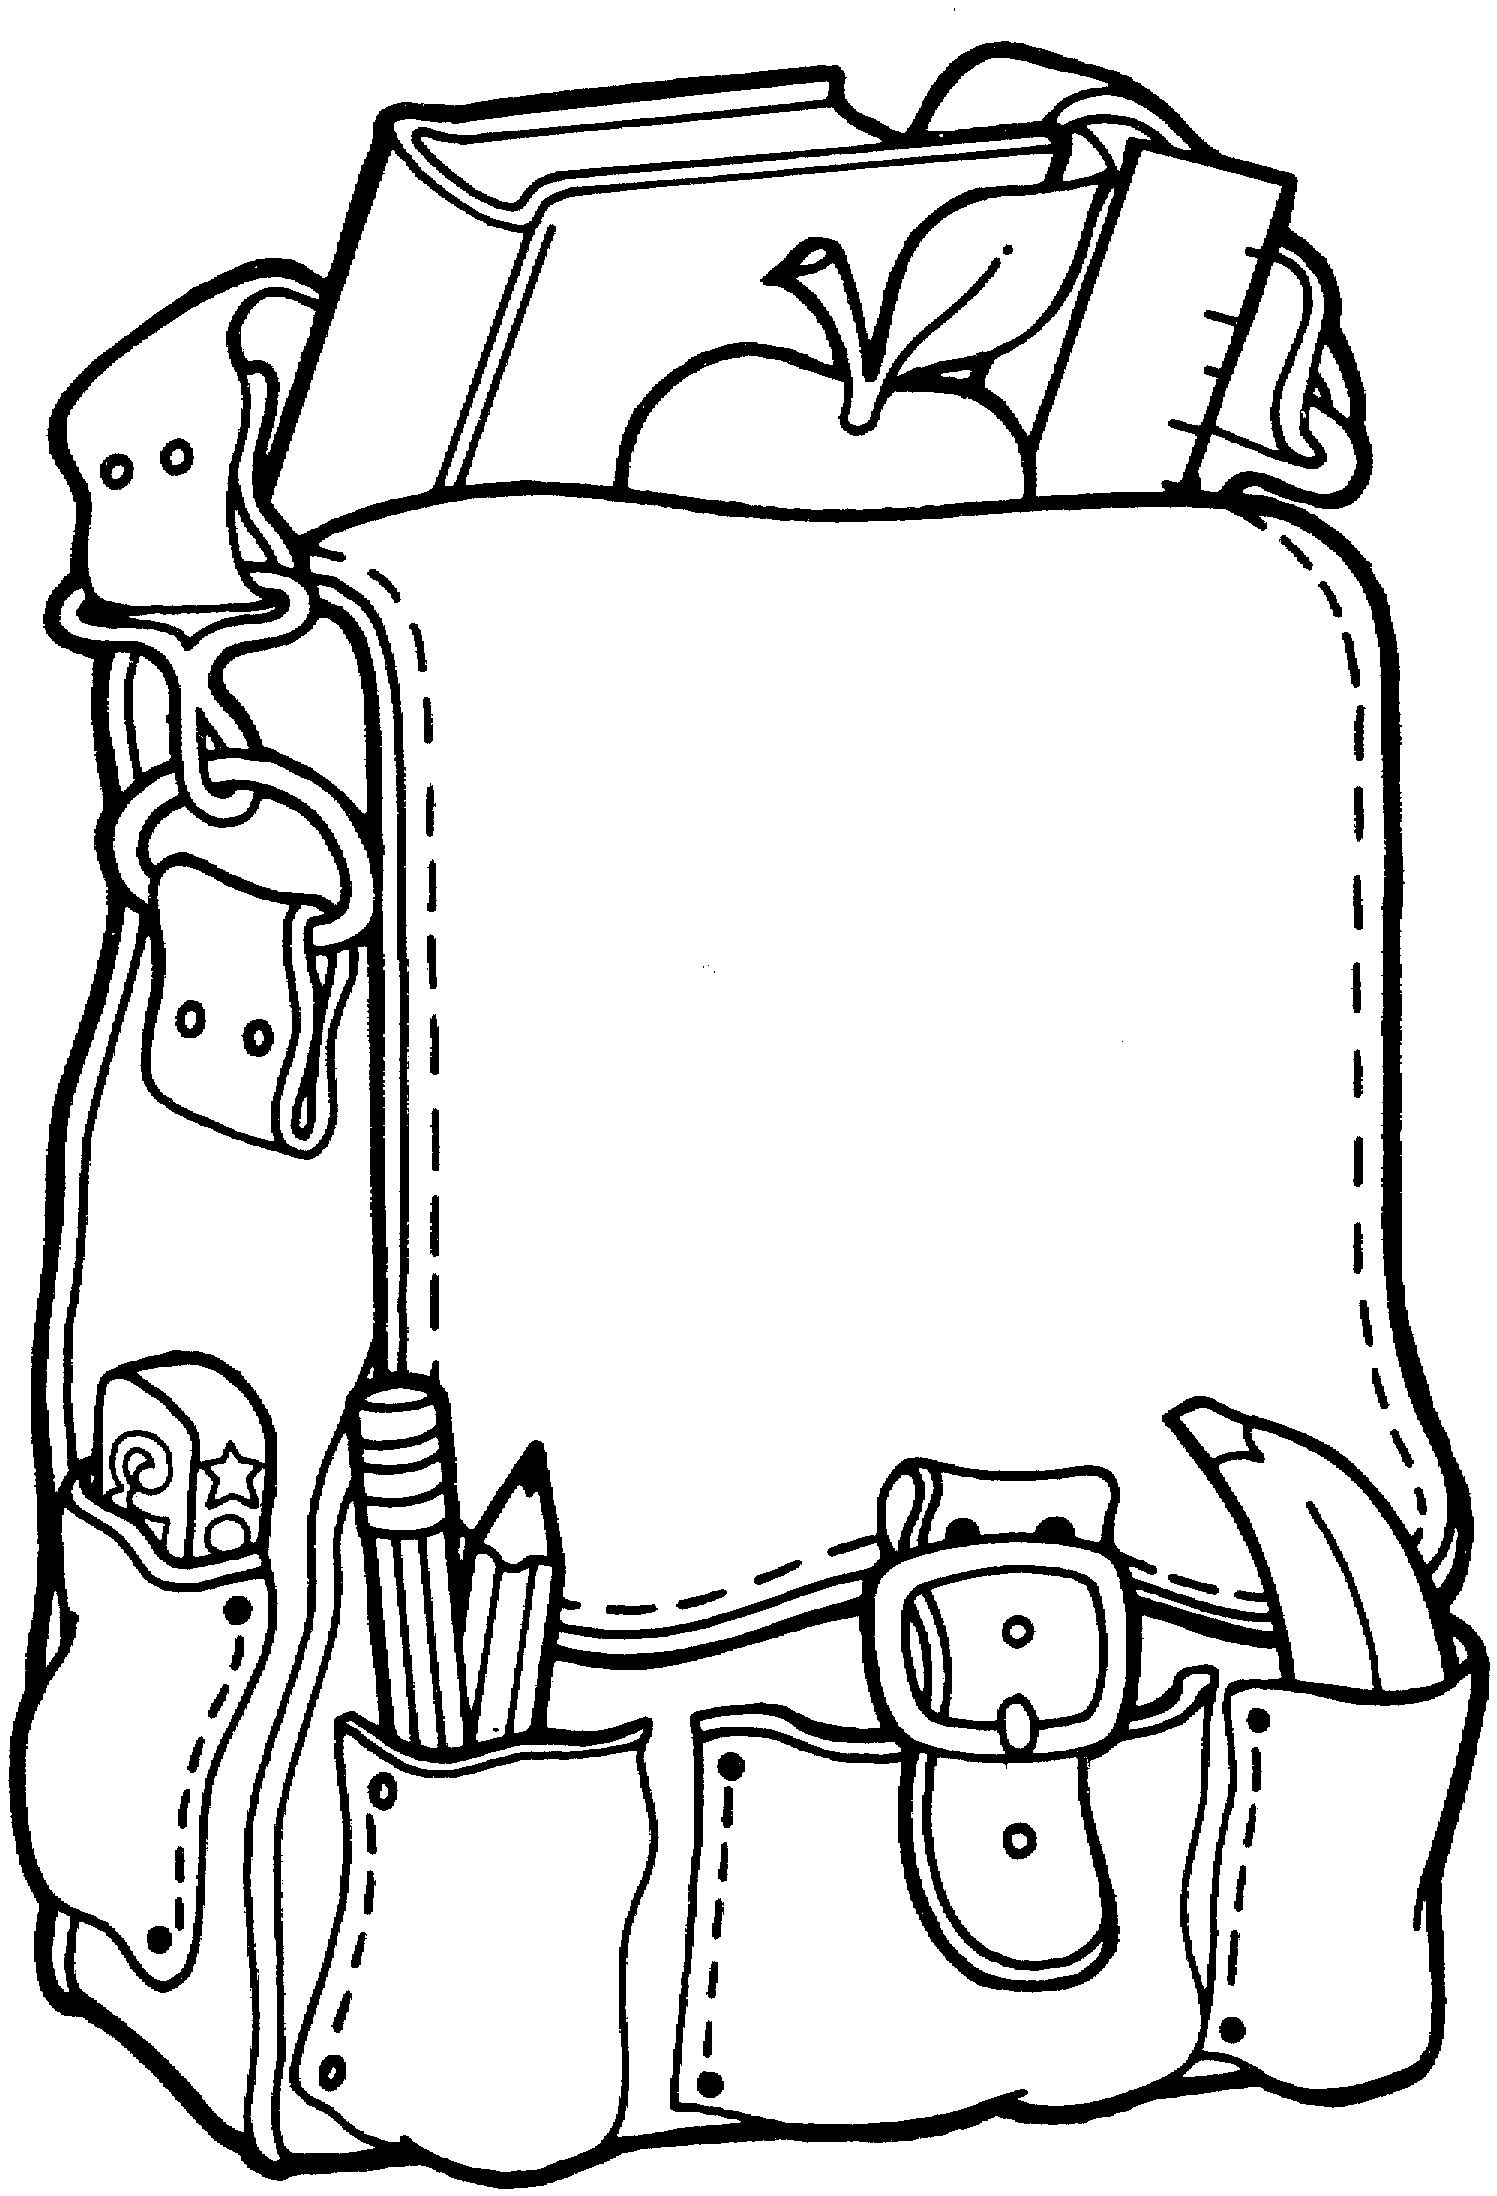 Preschool Coloring Pages School